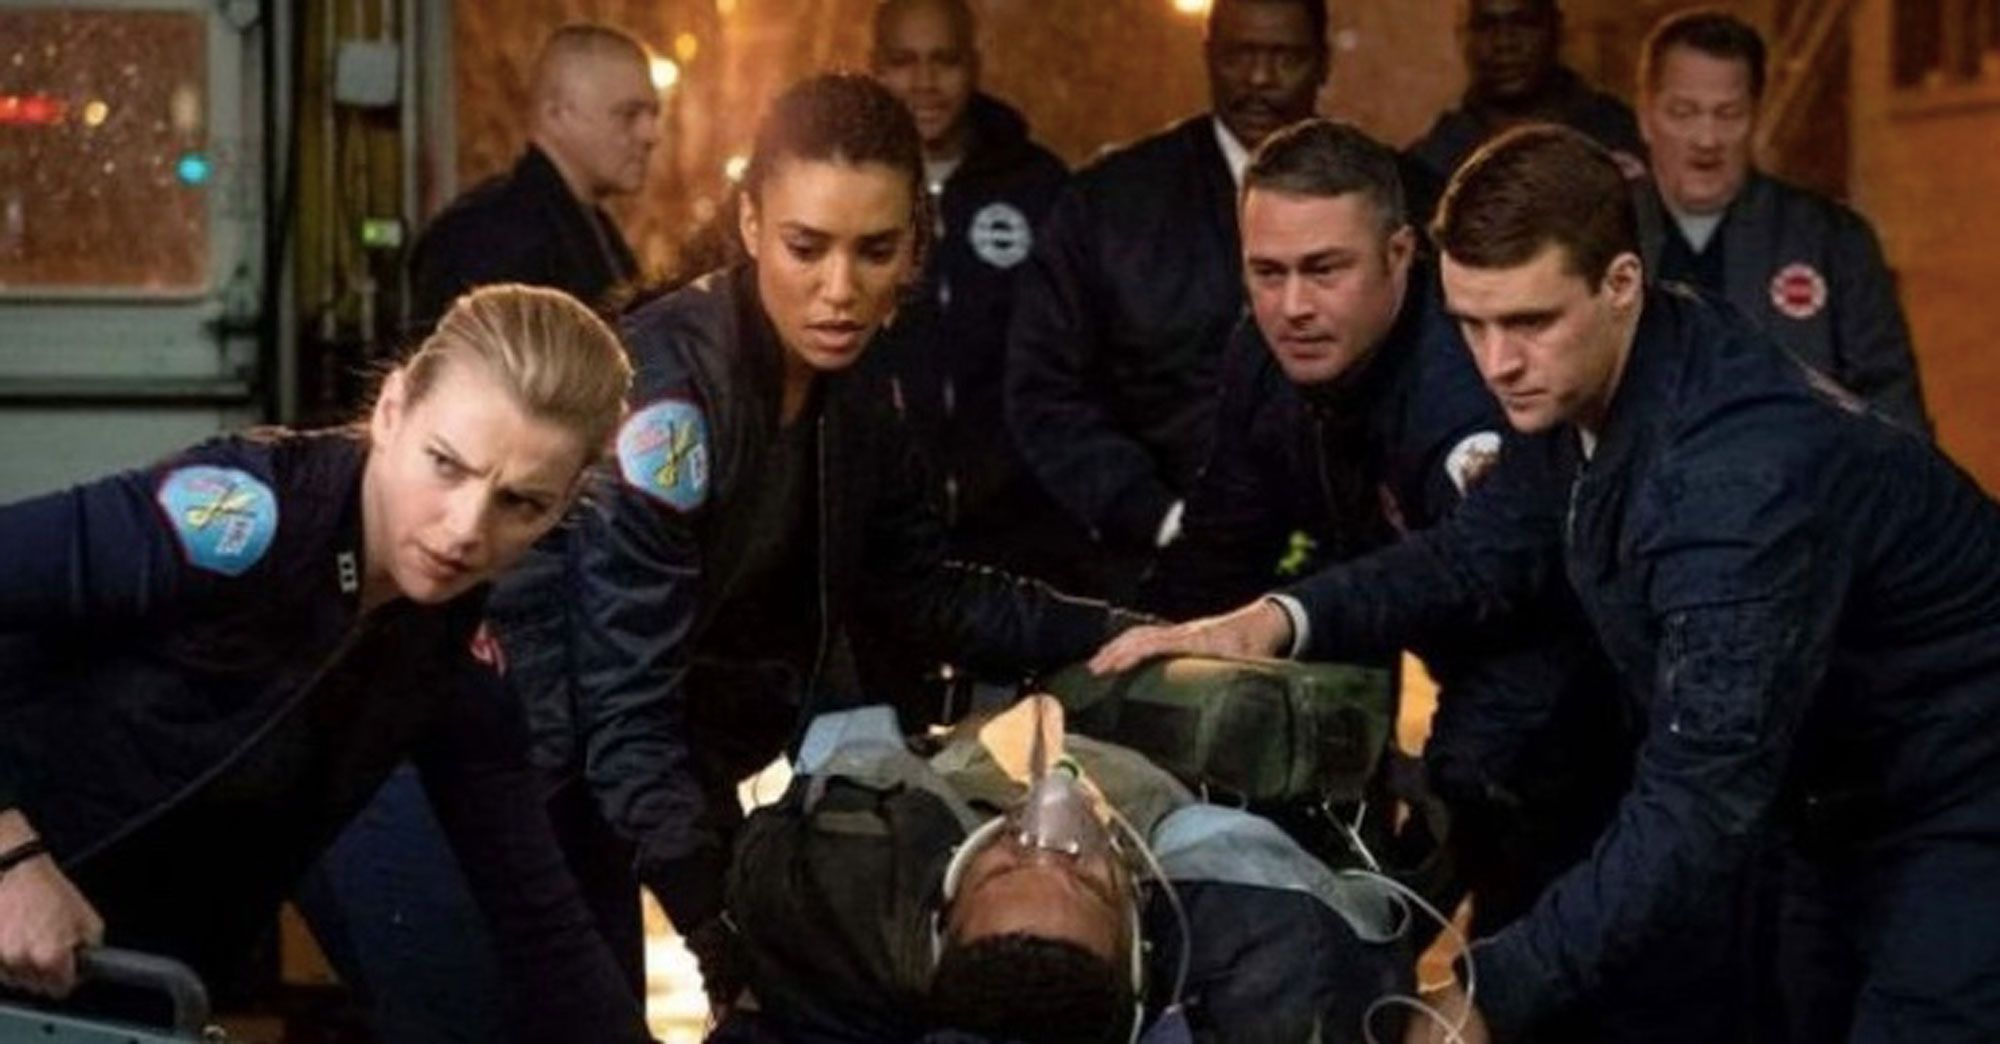 Chicago Fire season 9 release date, cast and more